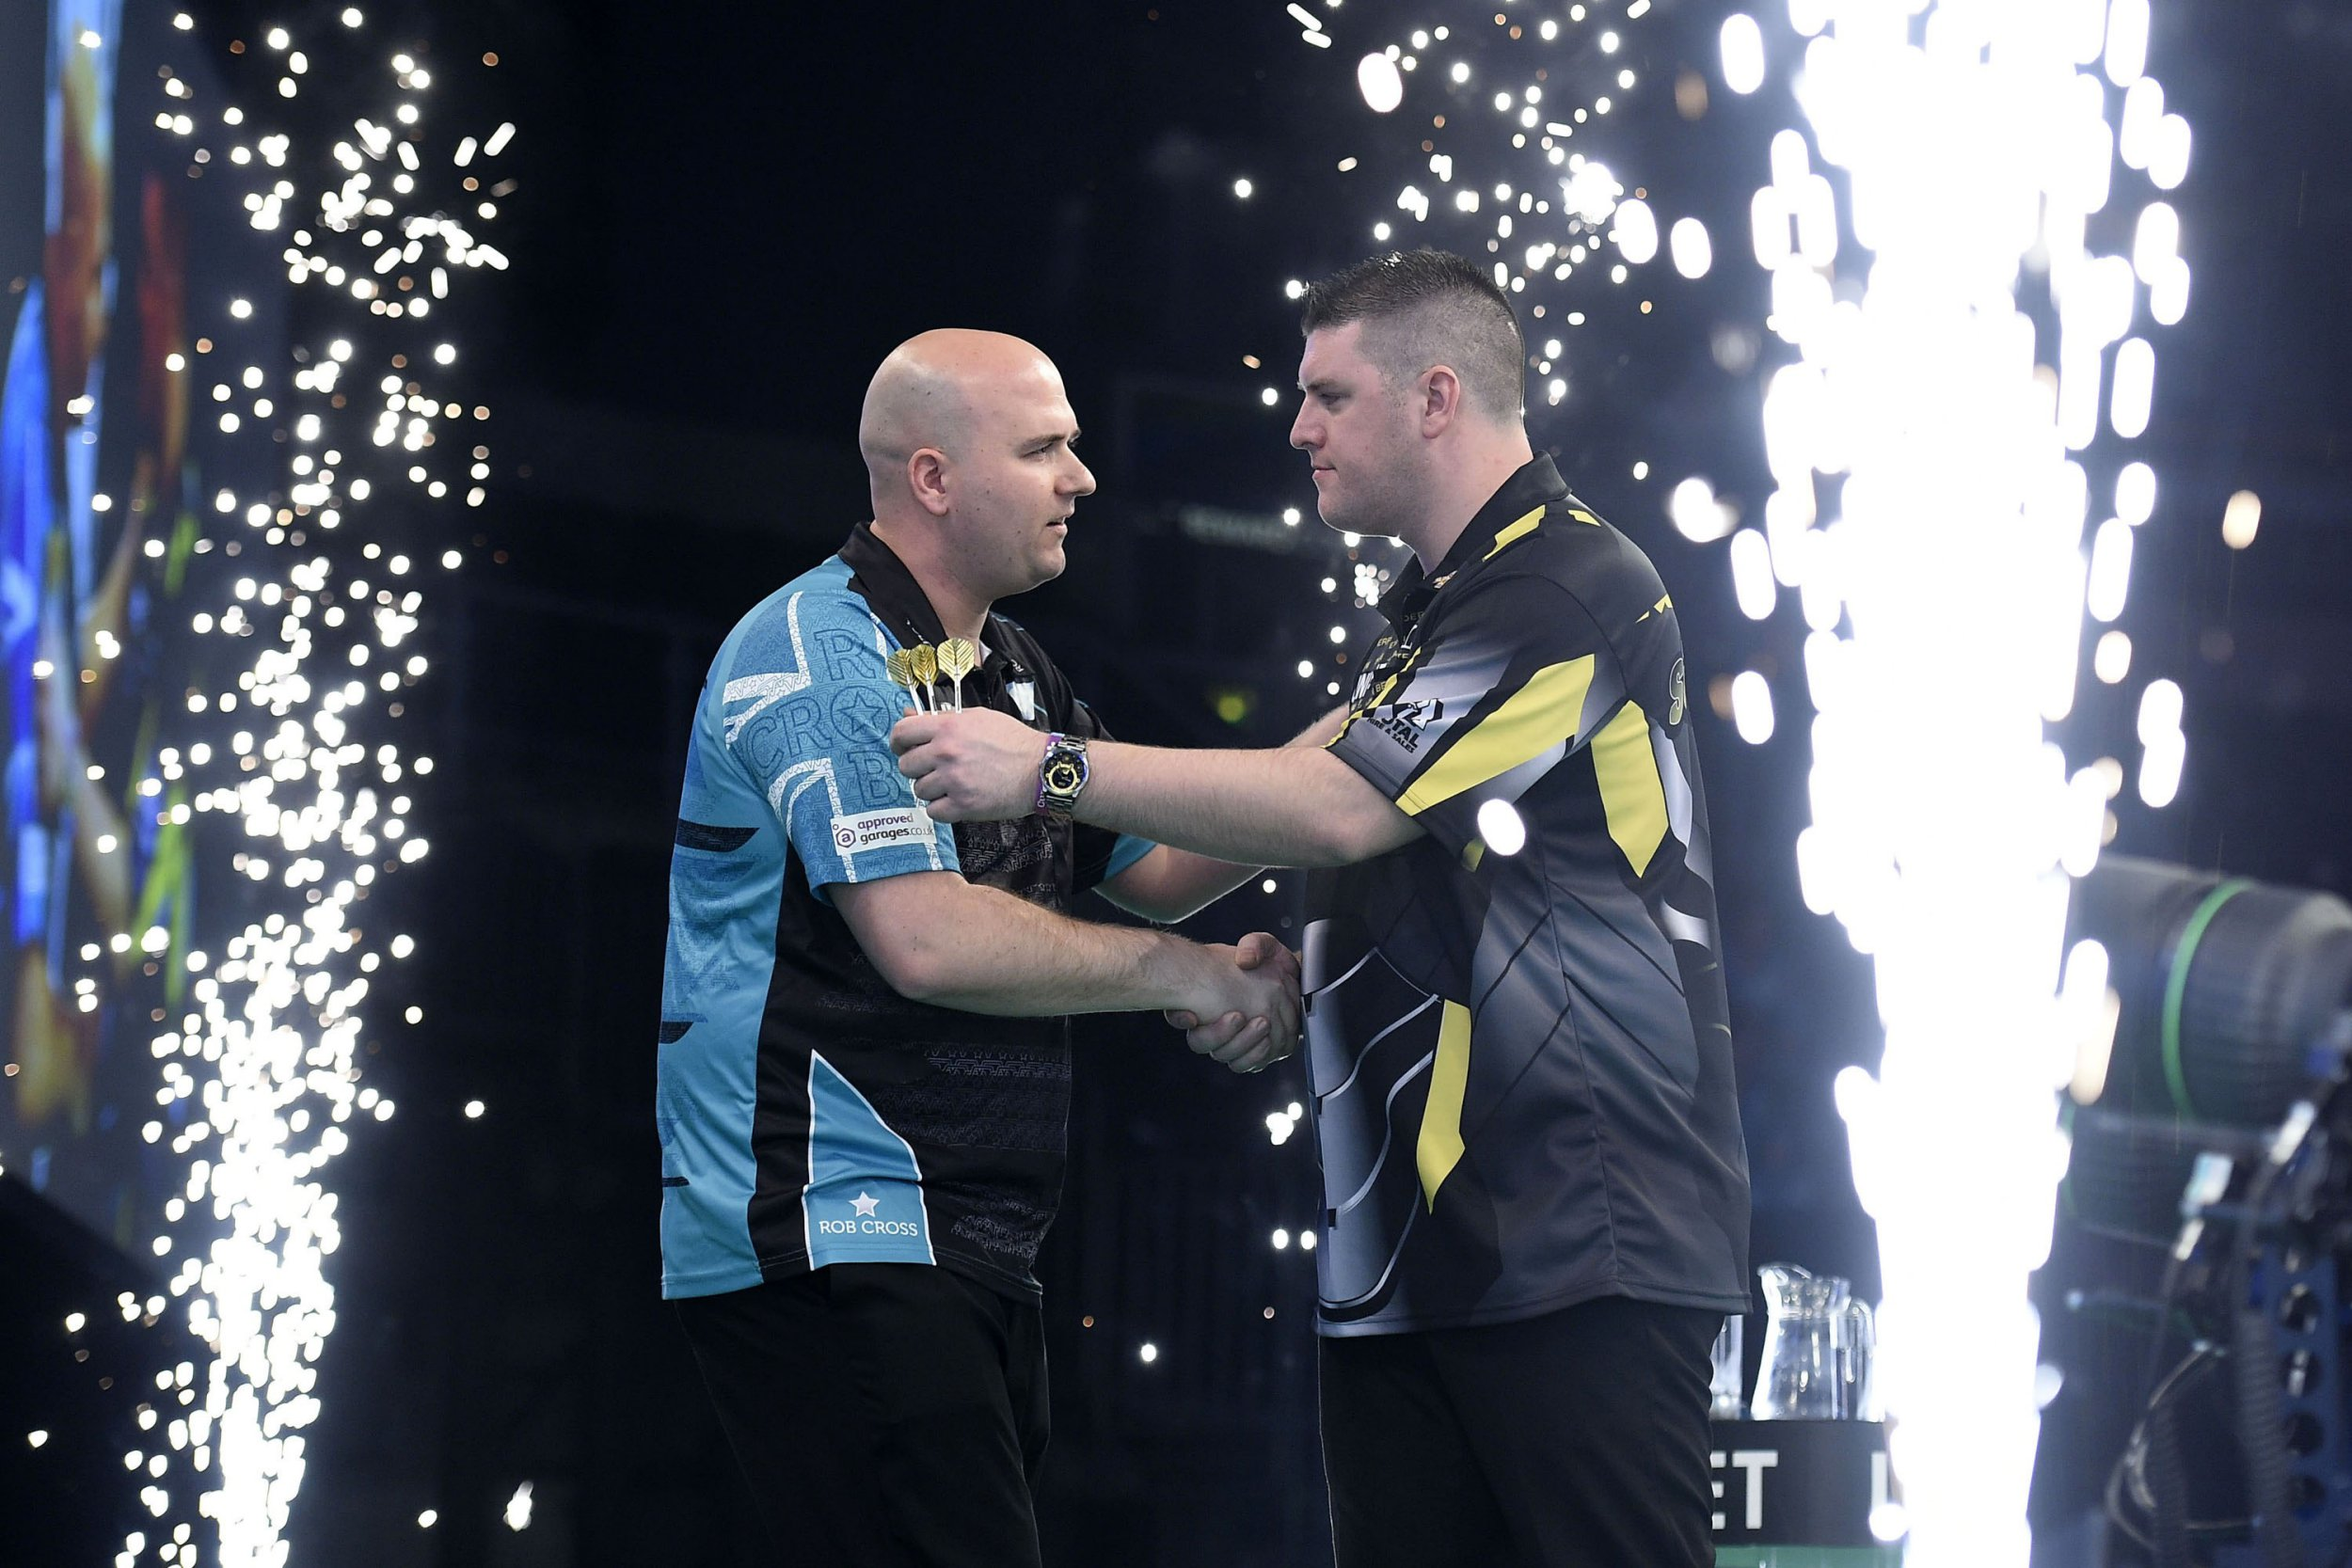 Premier League Darts Results: Cross goes top as MVG steals draw from hapless Price